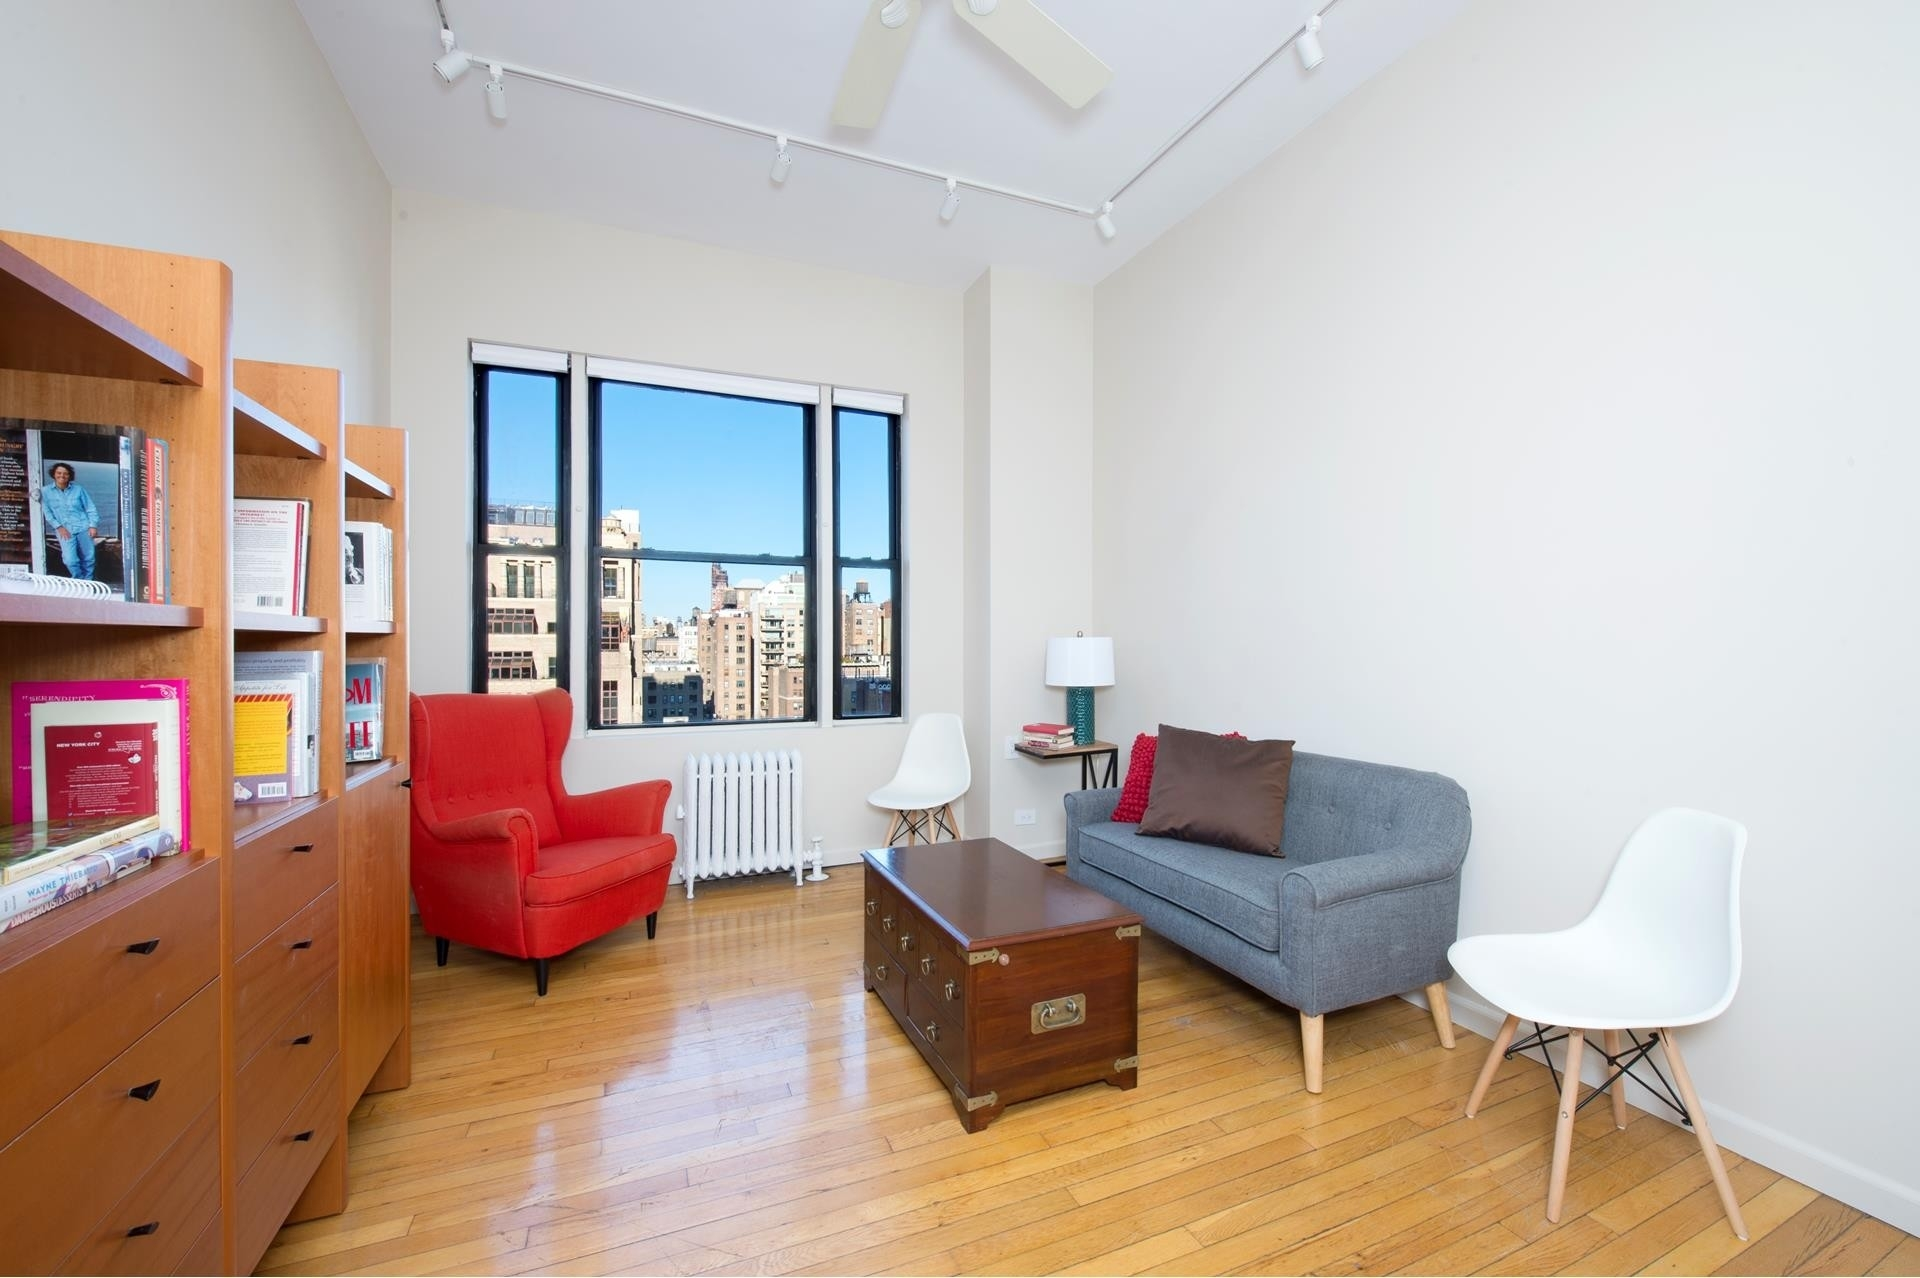 Co-op Properties 在 LINCOLN SPENCER, 140 West 69th St, 106C 纽约